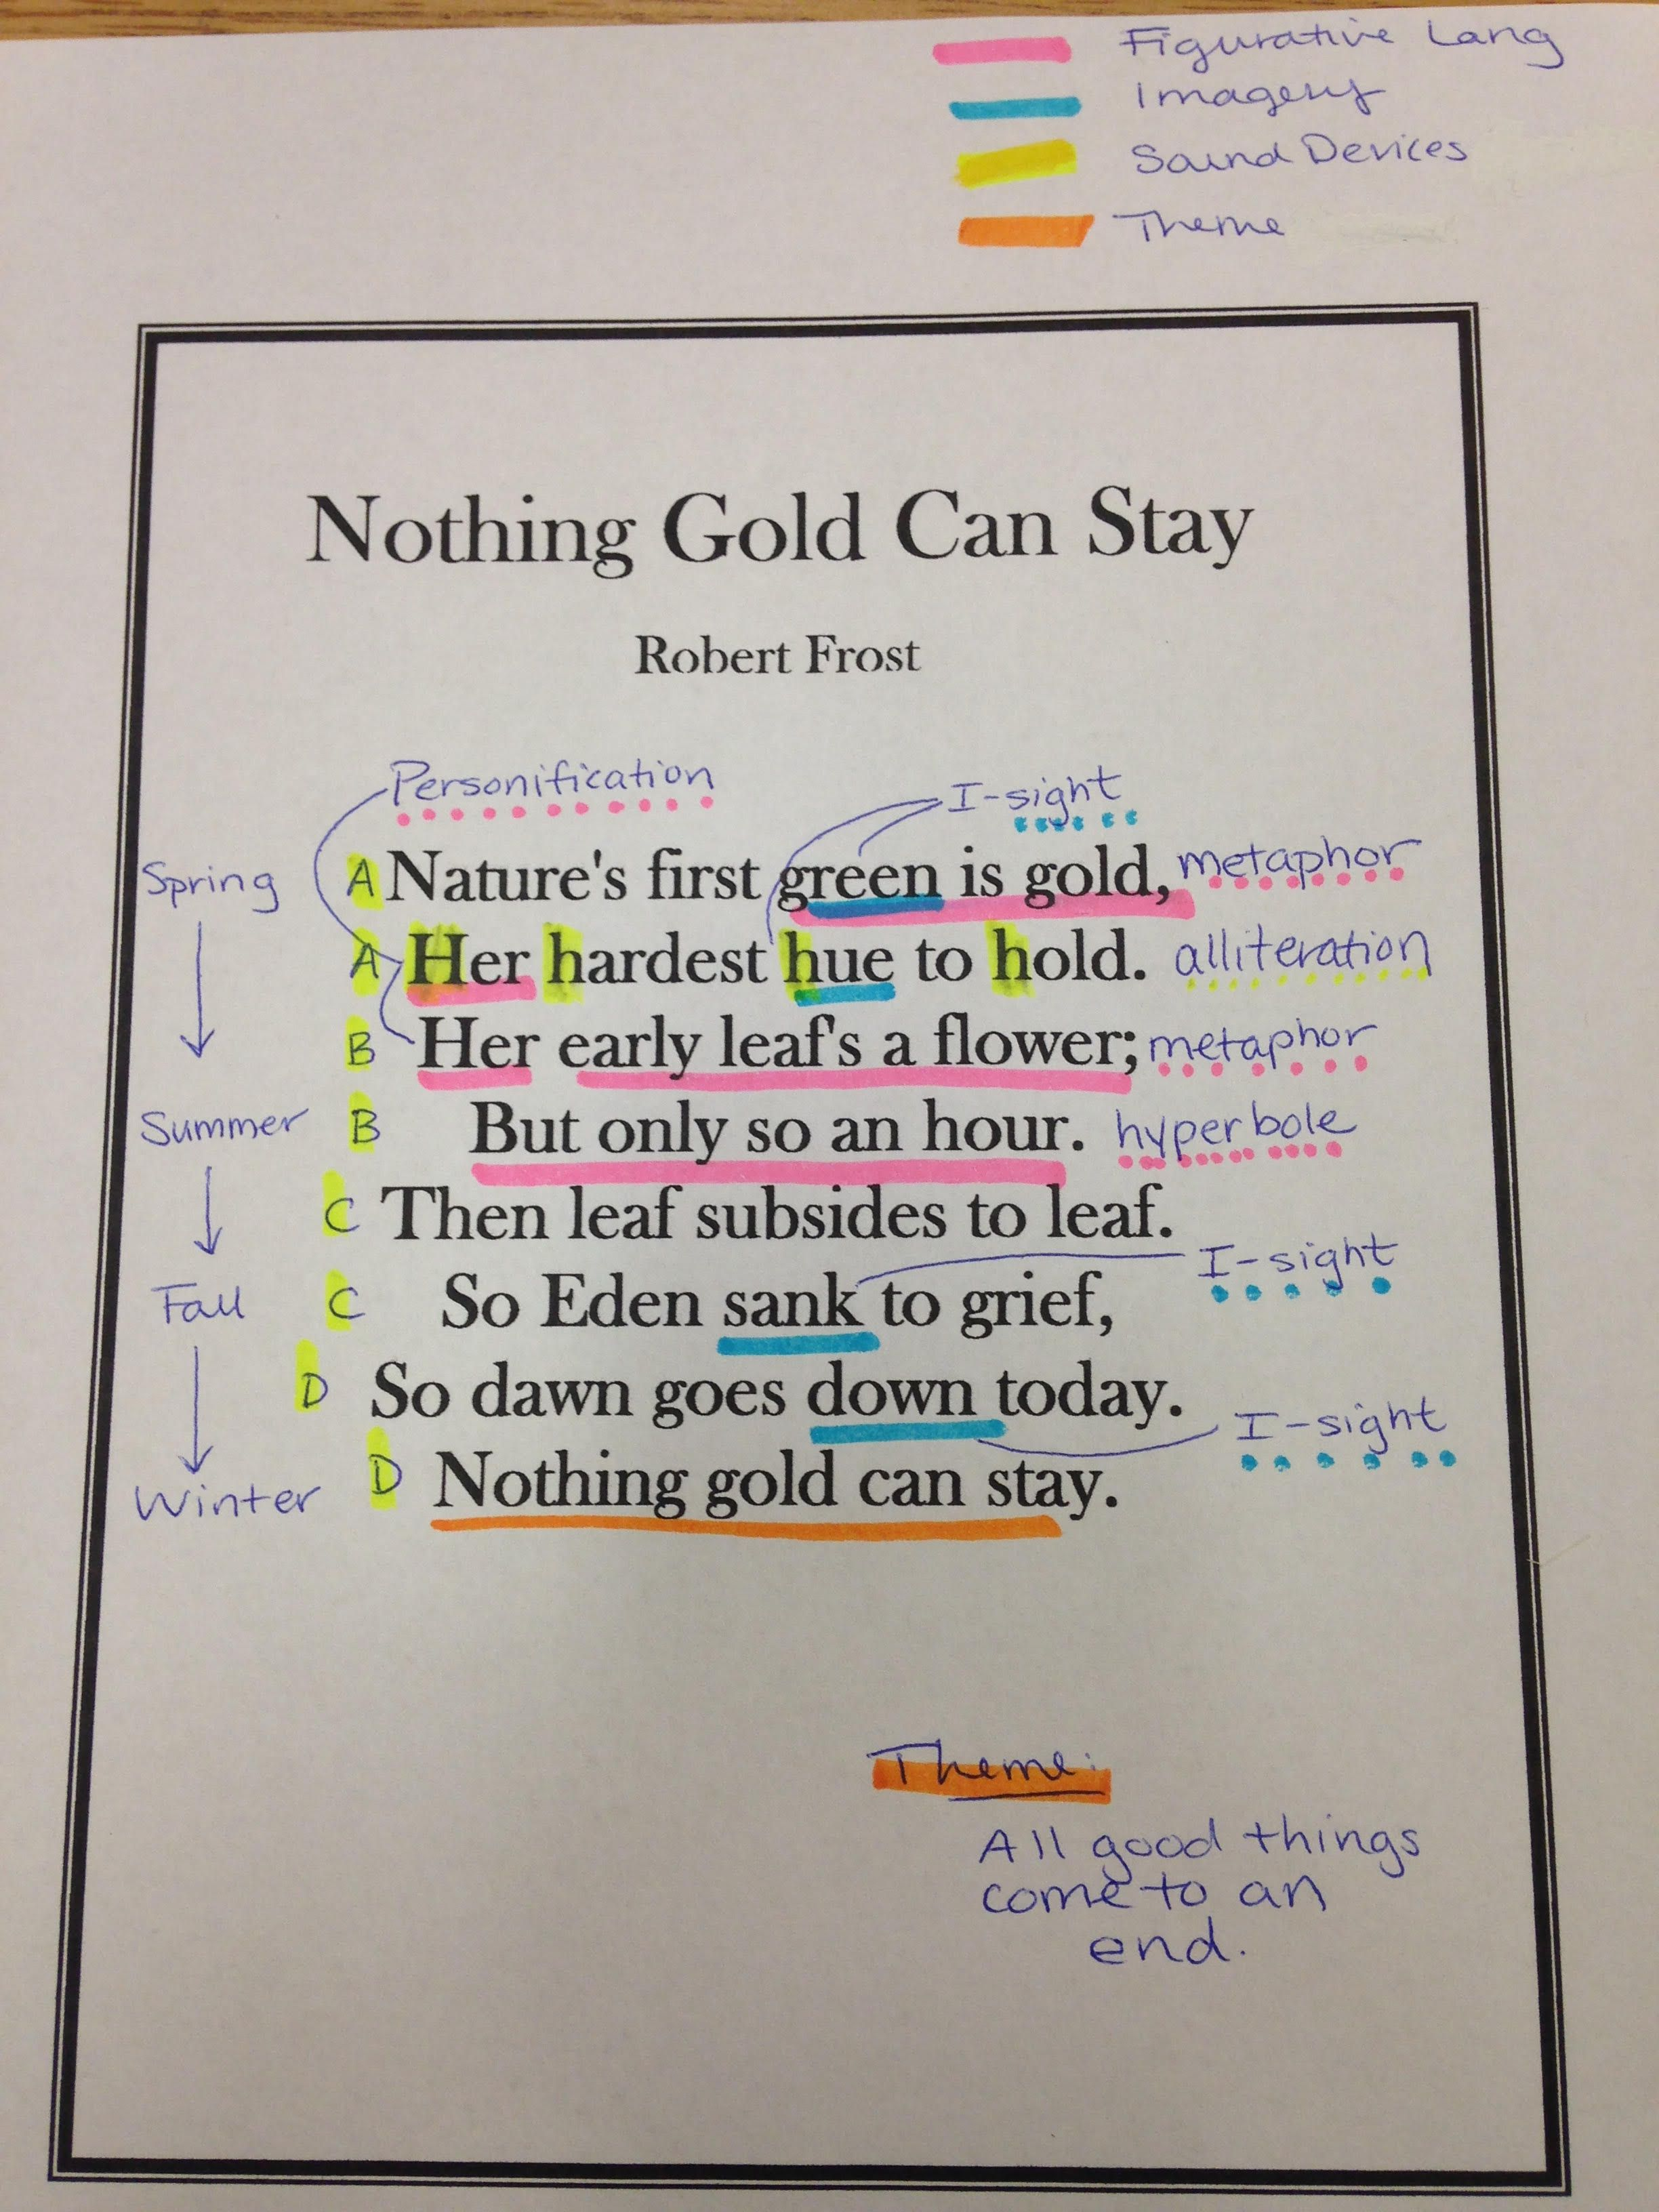 Related Image Online School Alliteration Nothing Gold Can Stay Paraphrase Robert Frost